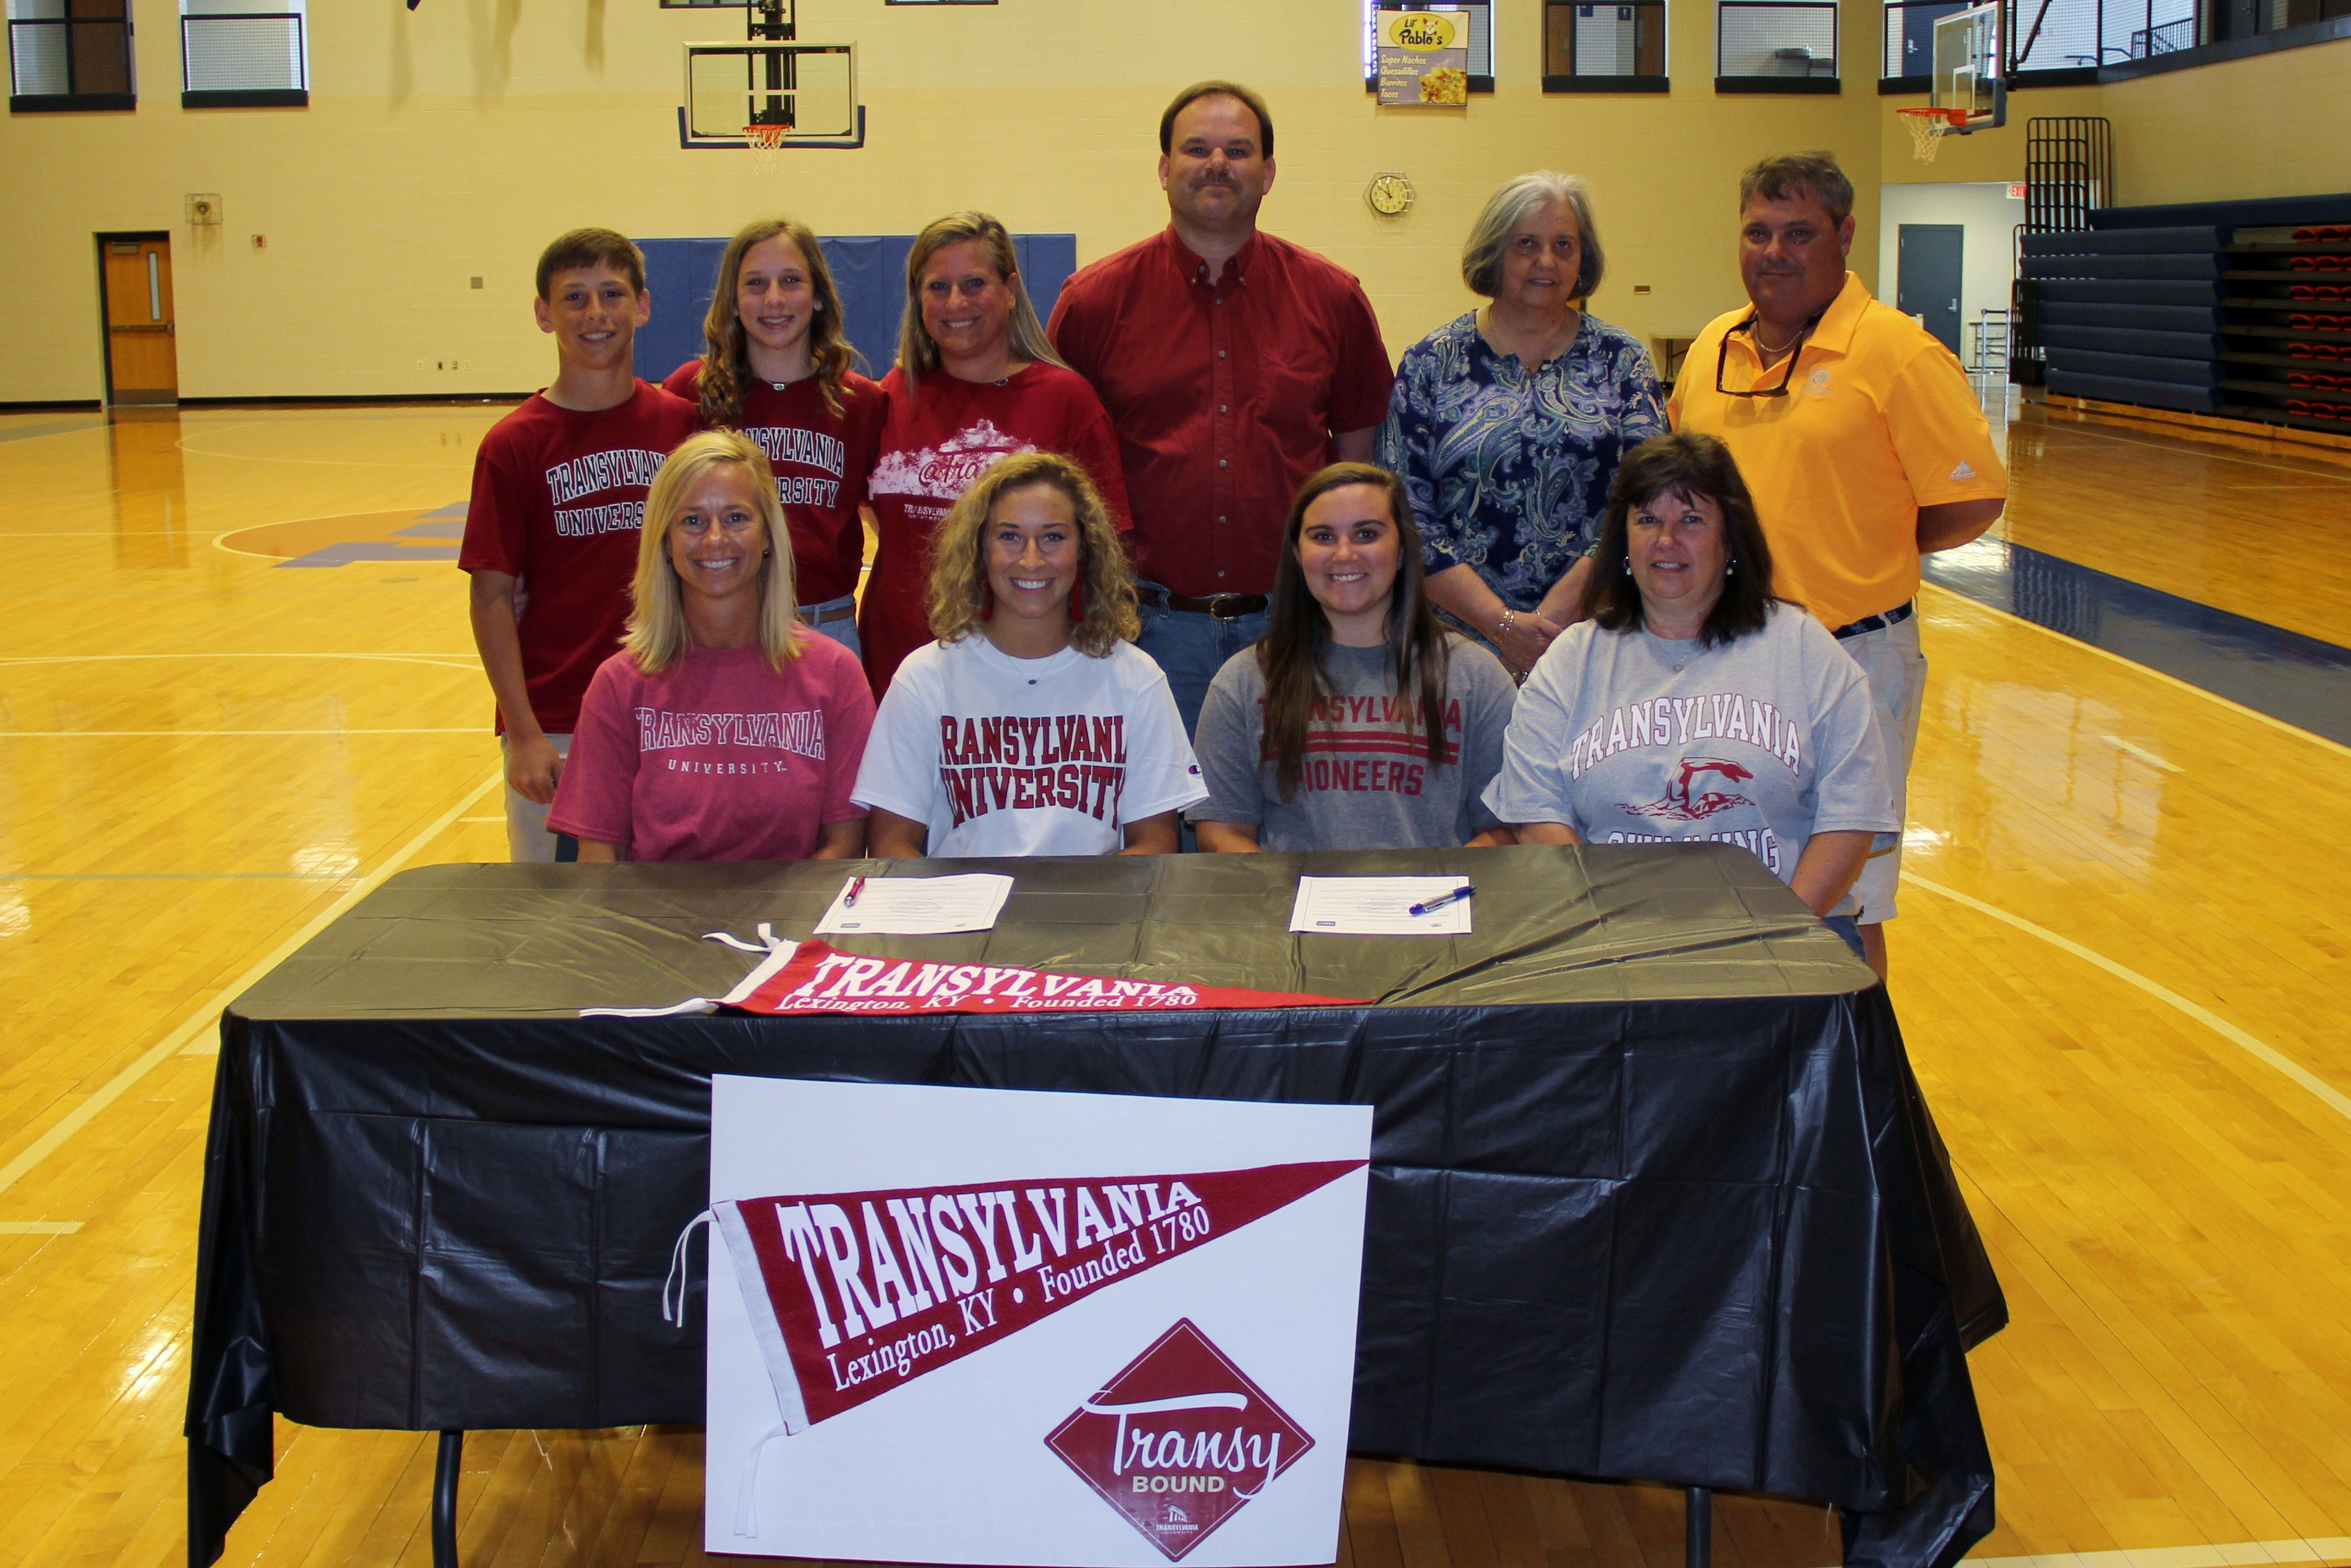 Seniors Benton Patrick and Ashleigh Richardson sign with Transylvania University.